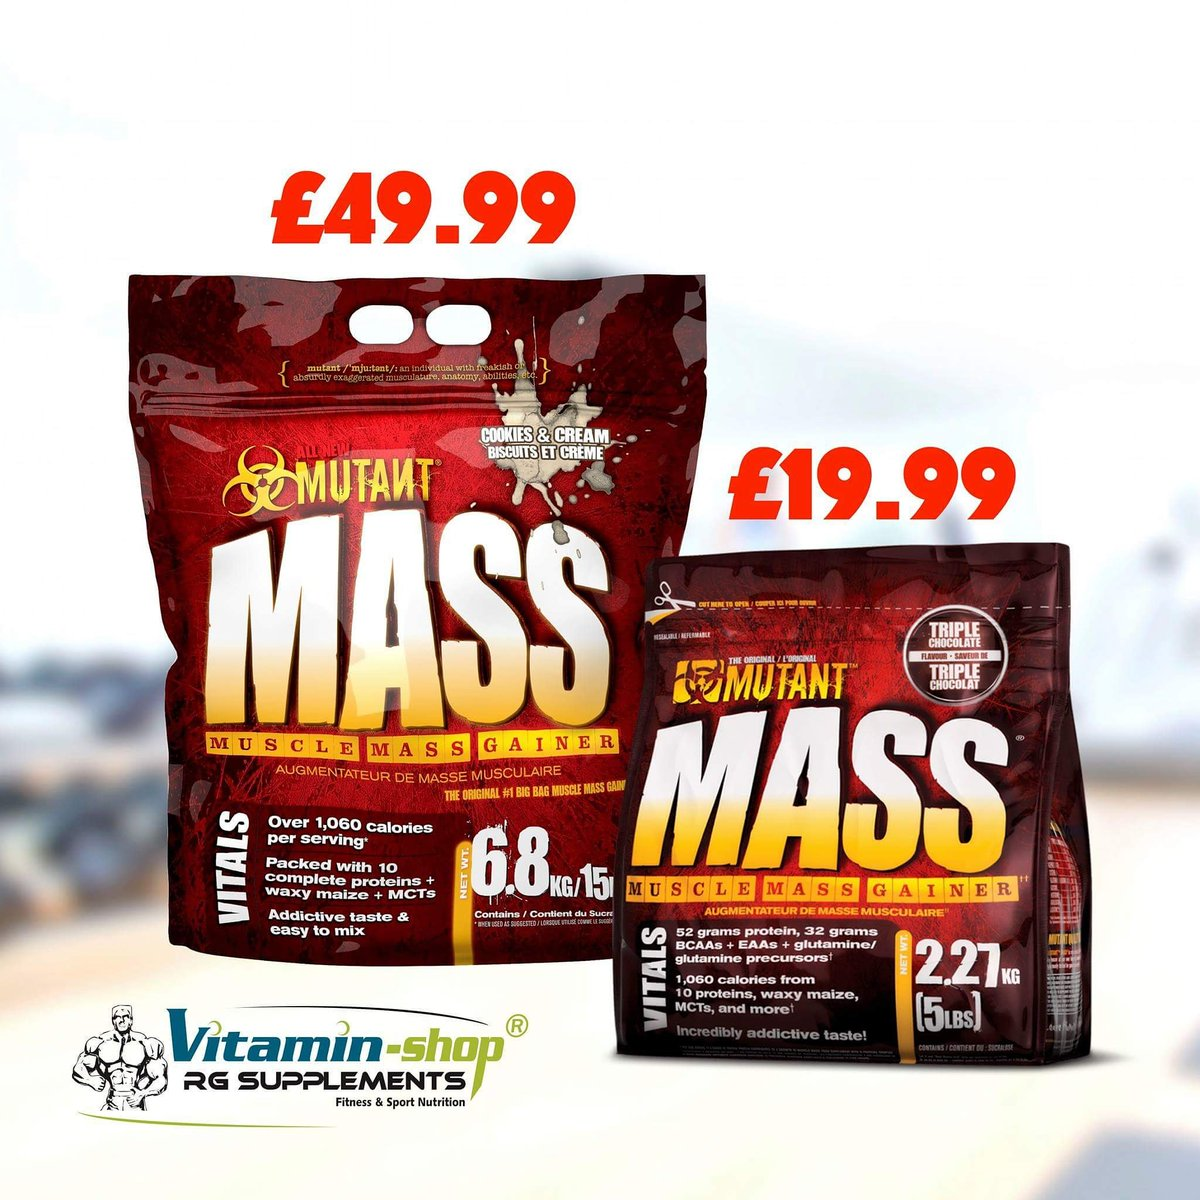 Mutantmass On Mutant Mass 15 Lb Special Offer At Vsreading Grab Your Favourite Bag And Save 10 Mutantnation Http Pictwittercom Qjcvhc2ym5